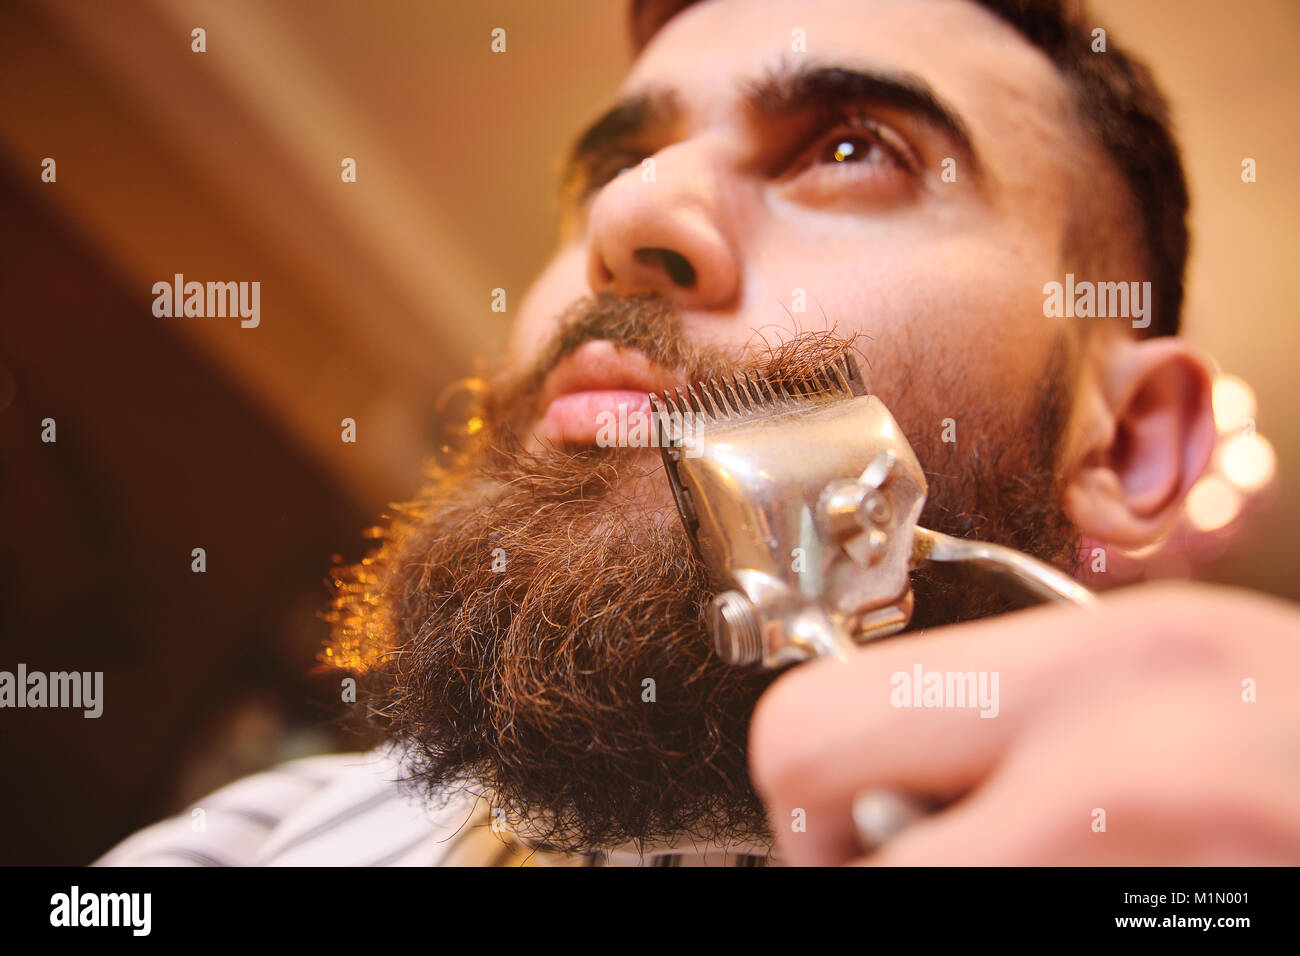 a young manly man with a beard in barbershop Stock Photo